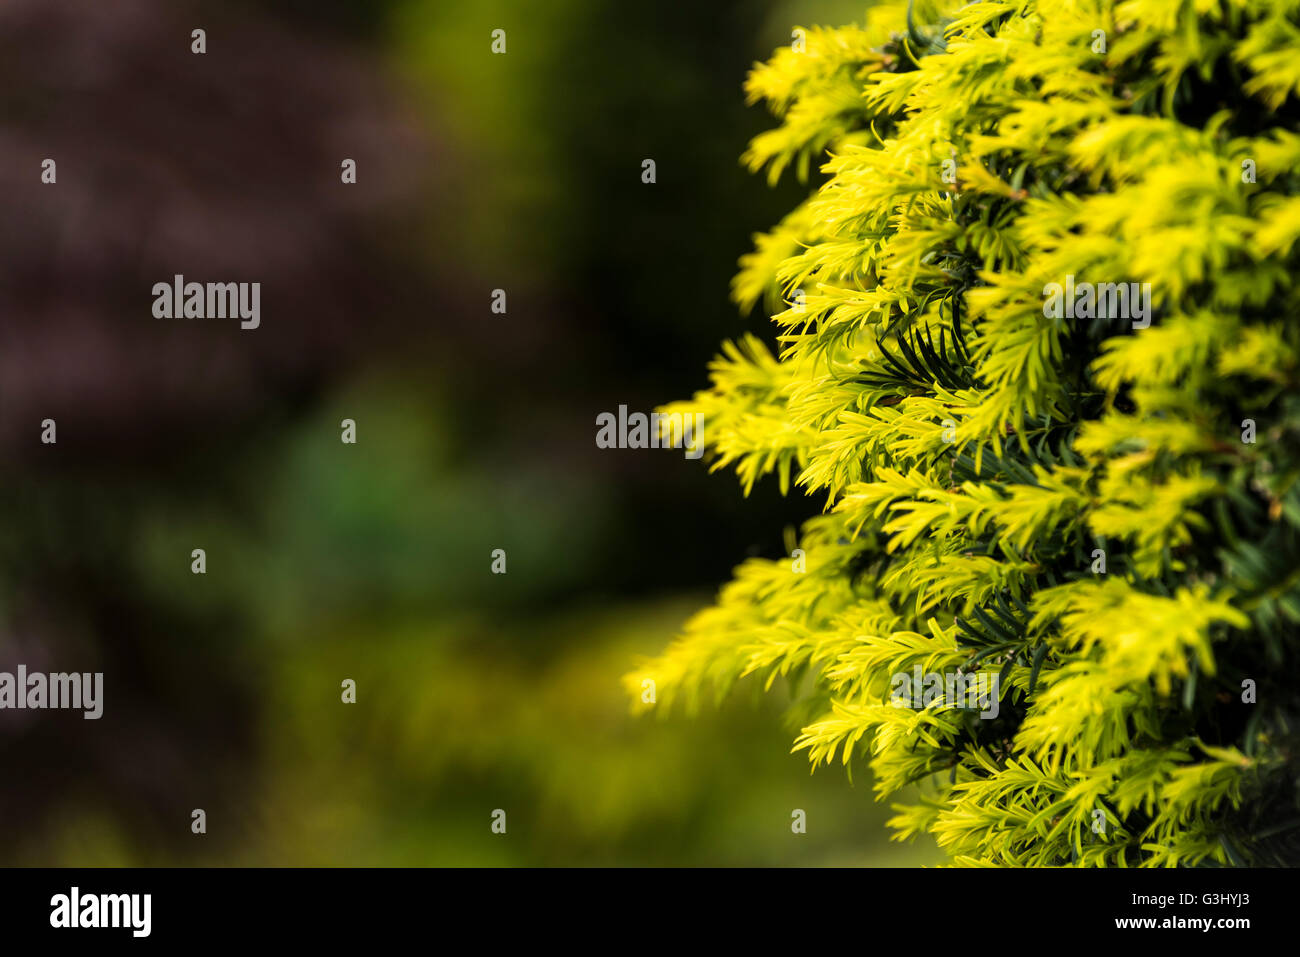 Close up of some Yew foliage. - Stock Image